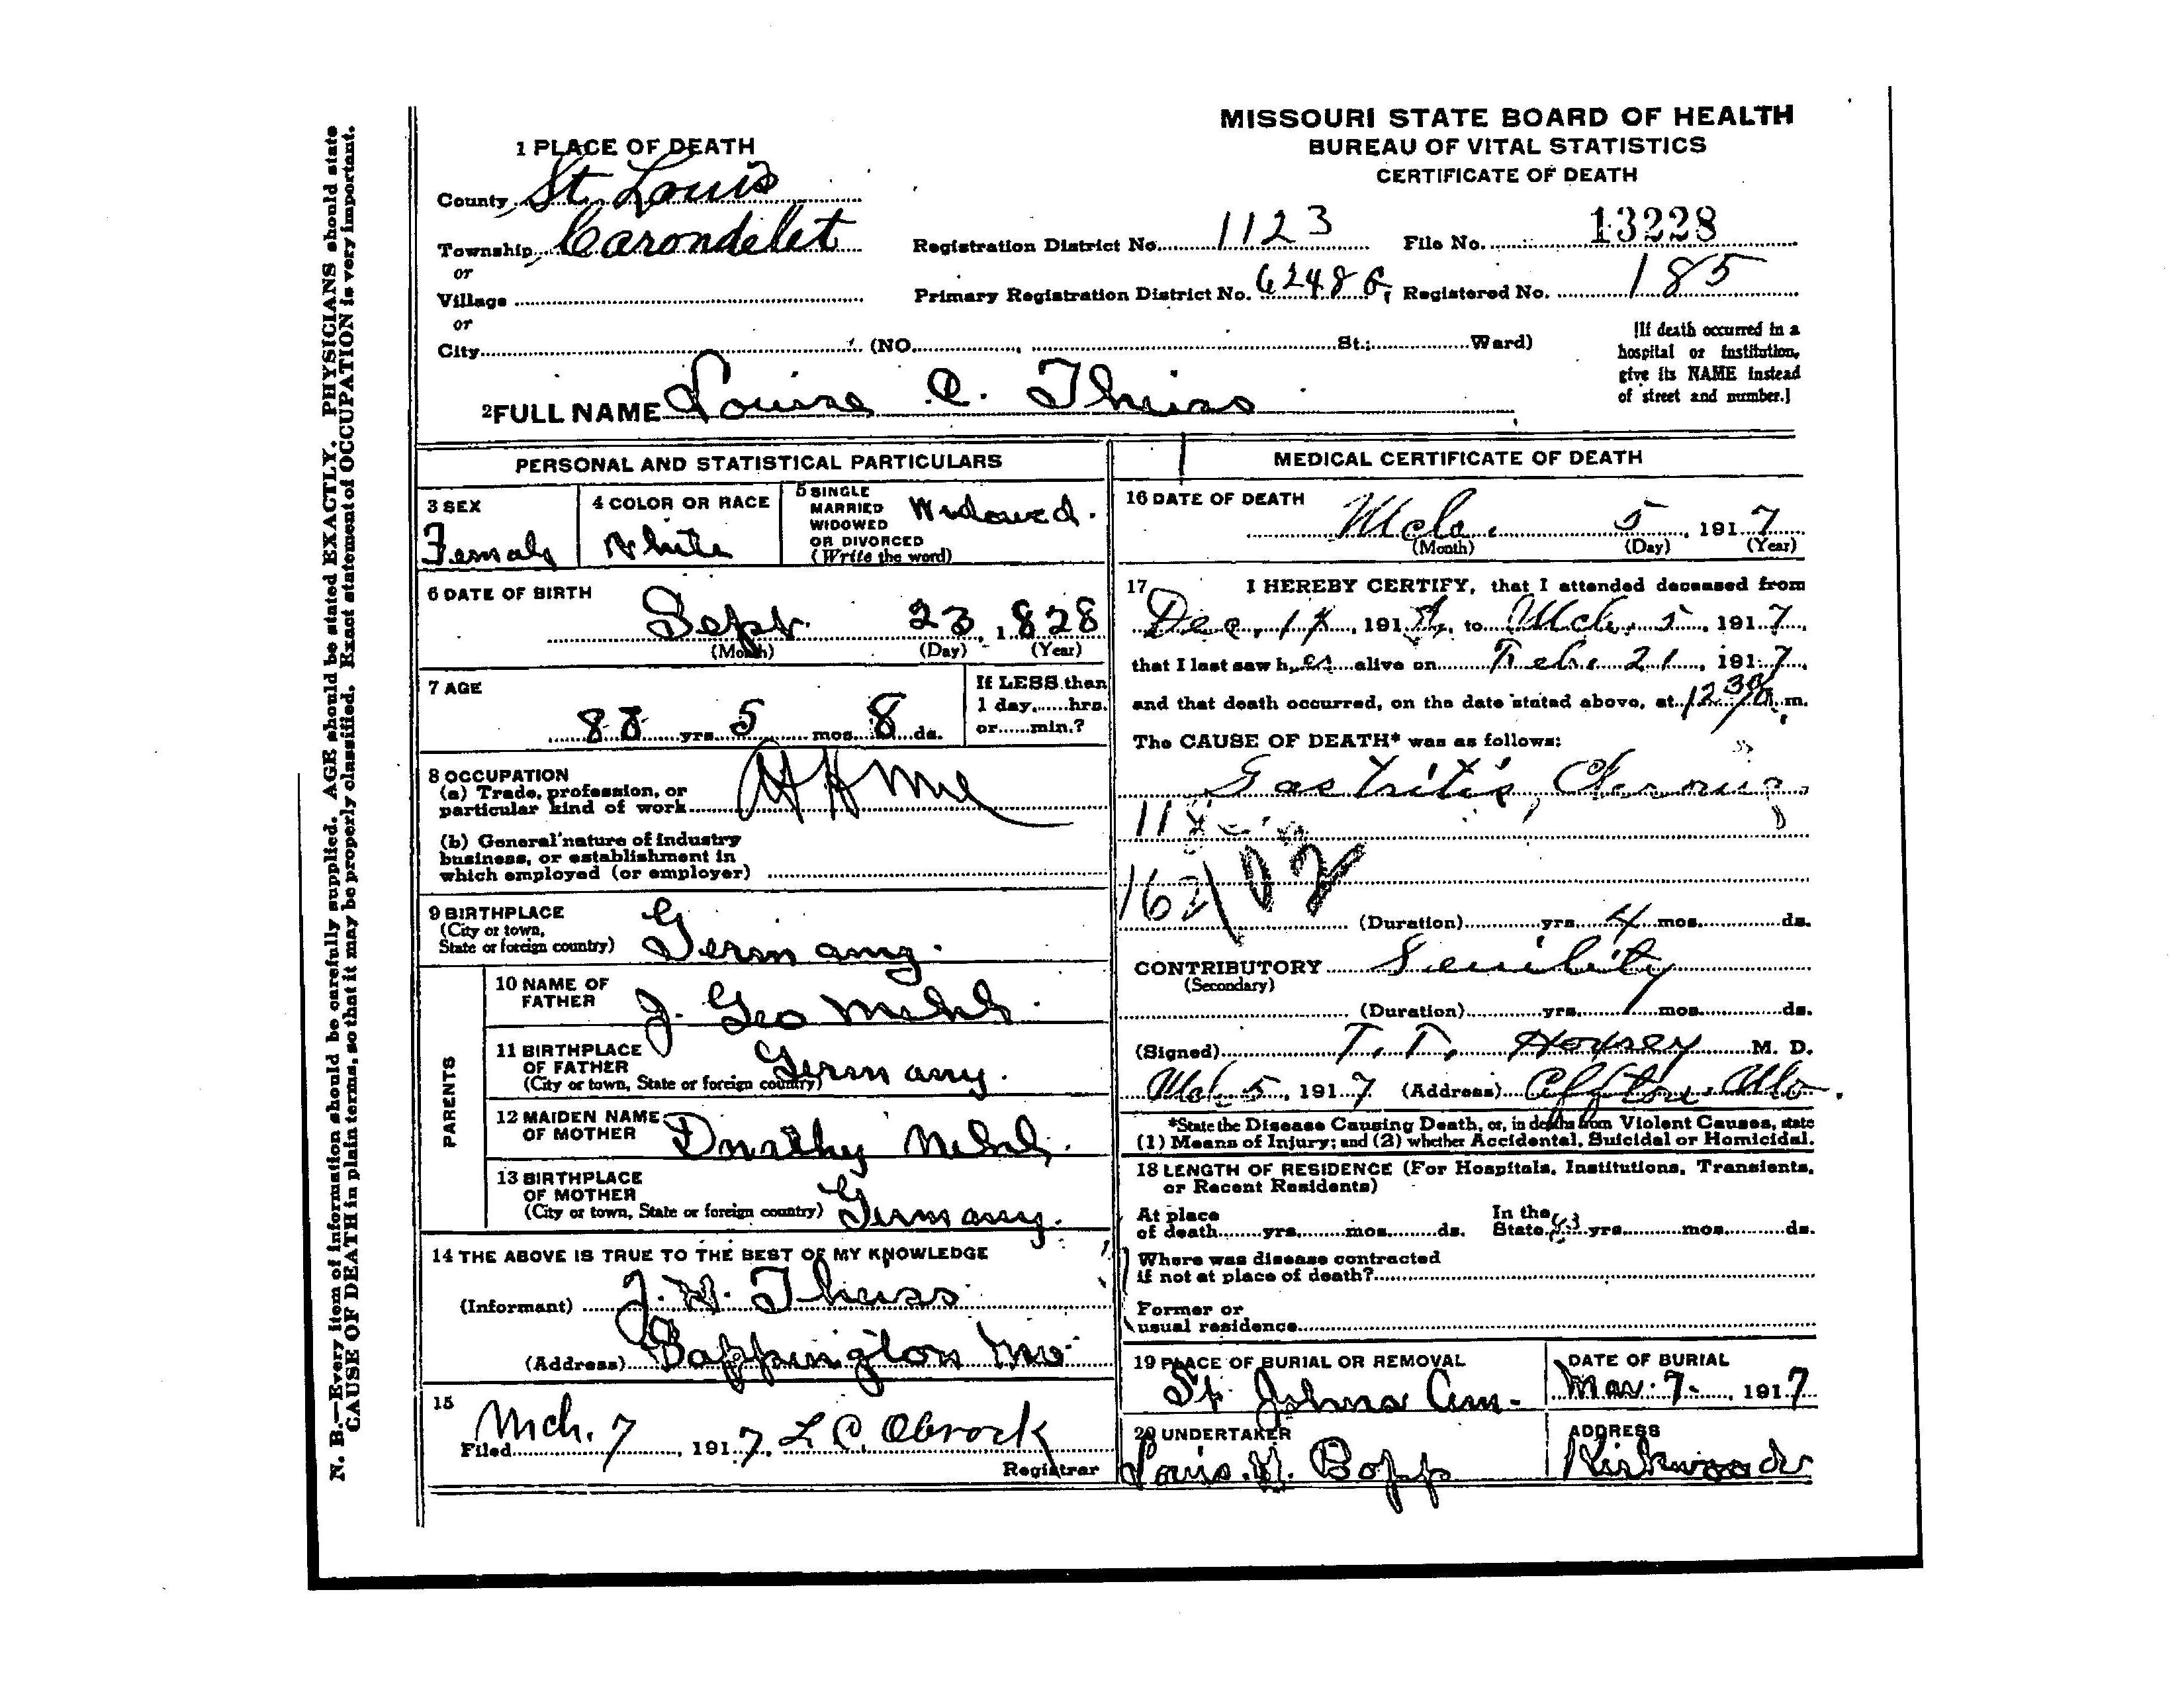 Louisa emma mehl theiss 1828 1917 find a grave memorial death certificate louisa emma theiss mehl birth 23 sep 1828 in nassau deggendorf bayern germany death 7 march 1917 in st louis st louis missouri 1betcityfo Choice Image